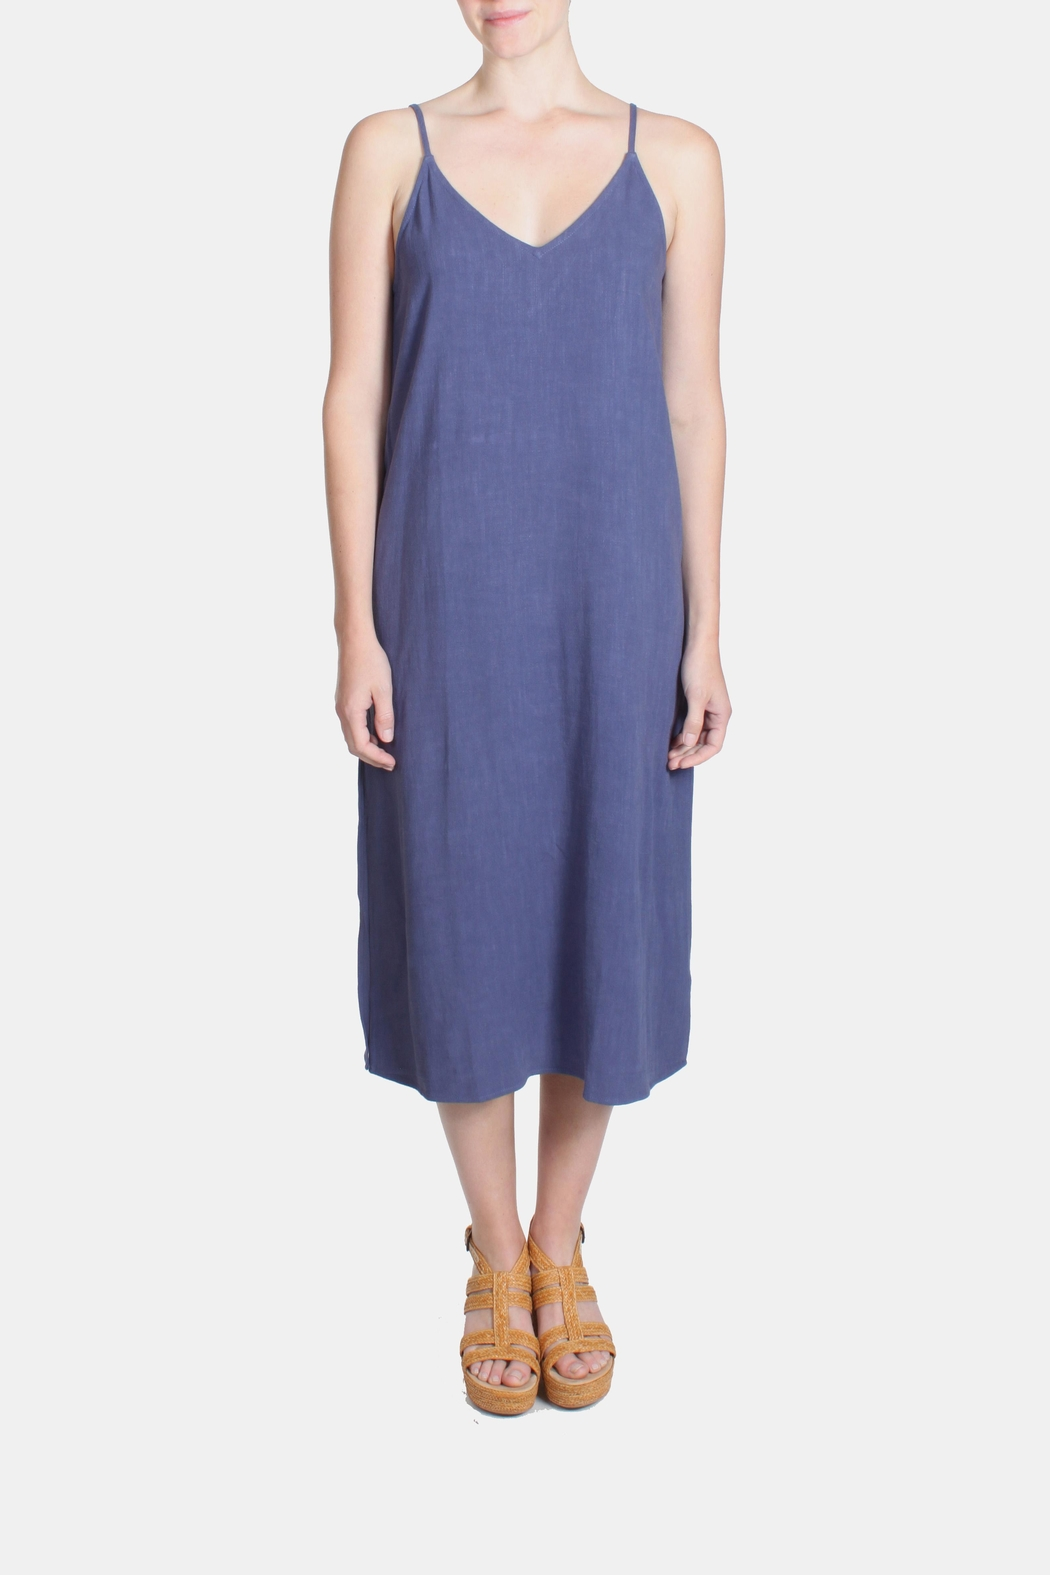 Jella Couture Periwinkle Linen Slip Dress - Back Cropped Image